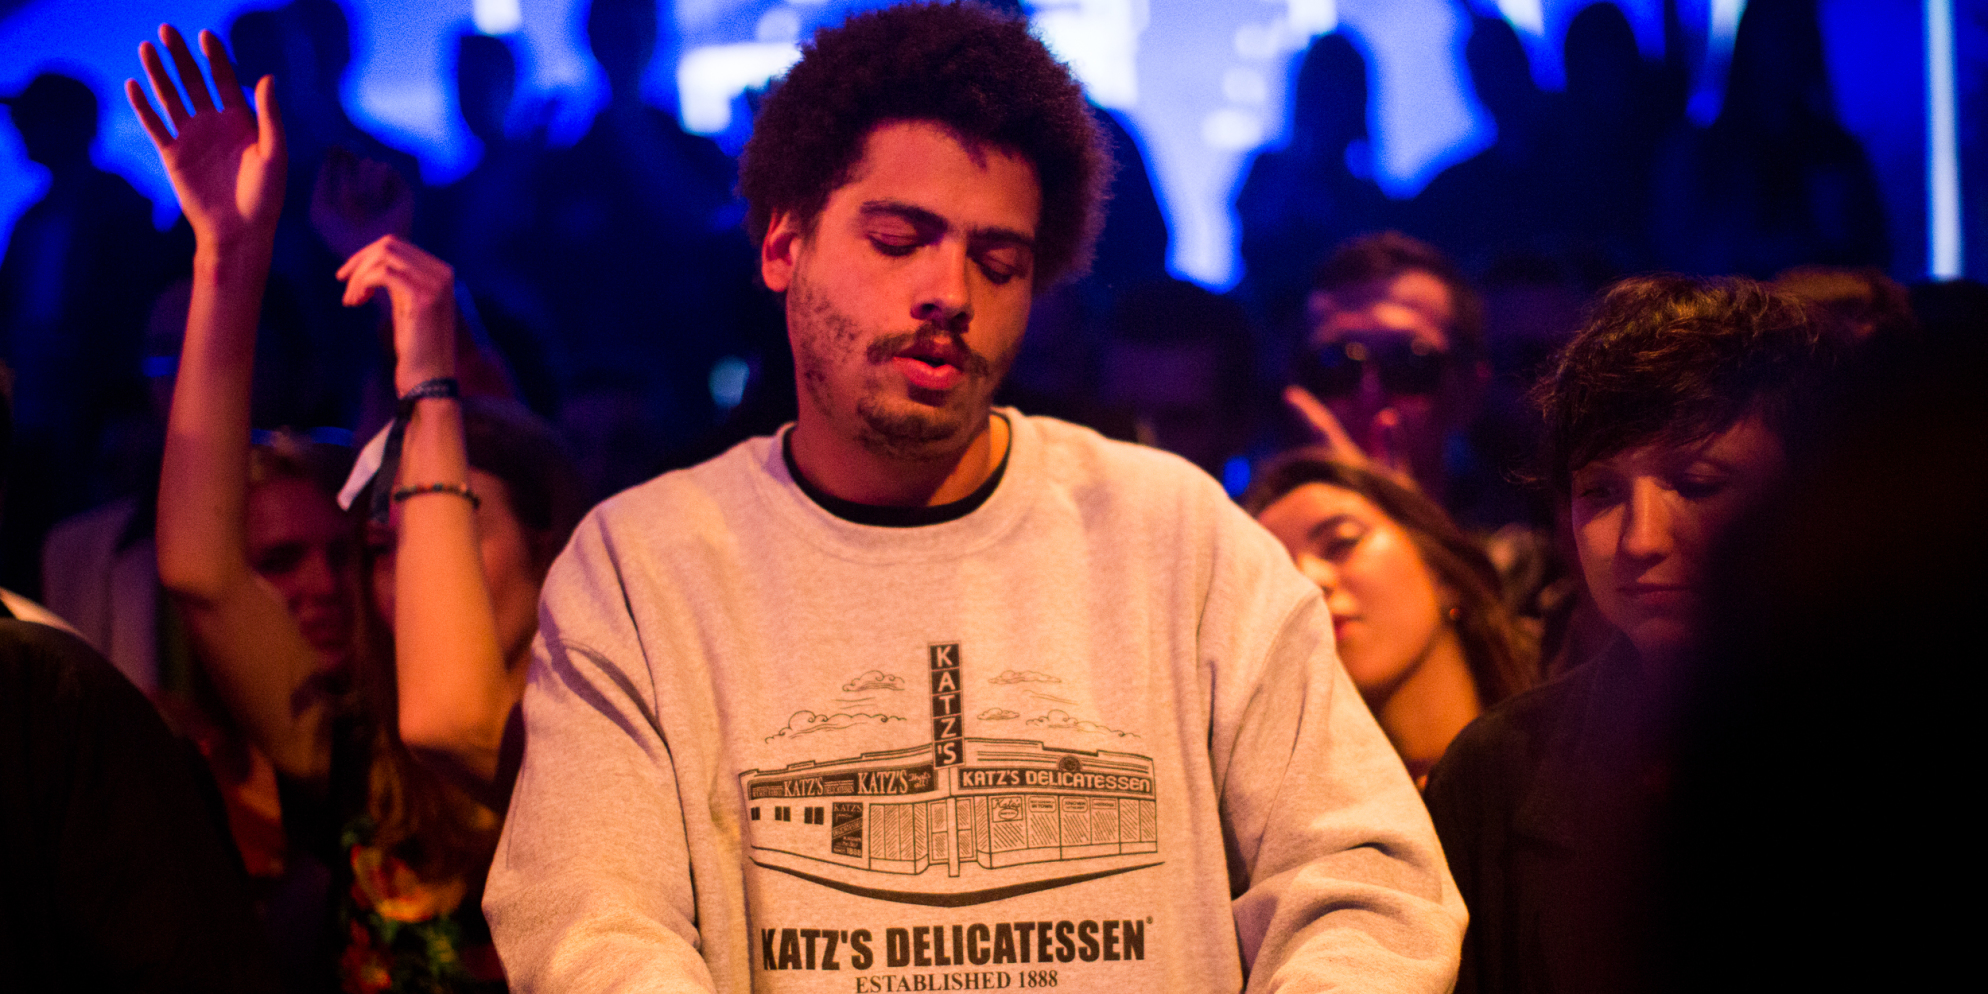 Boiler Room x Ballantine's | True Music | Seth Troxler